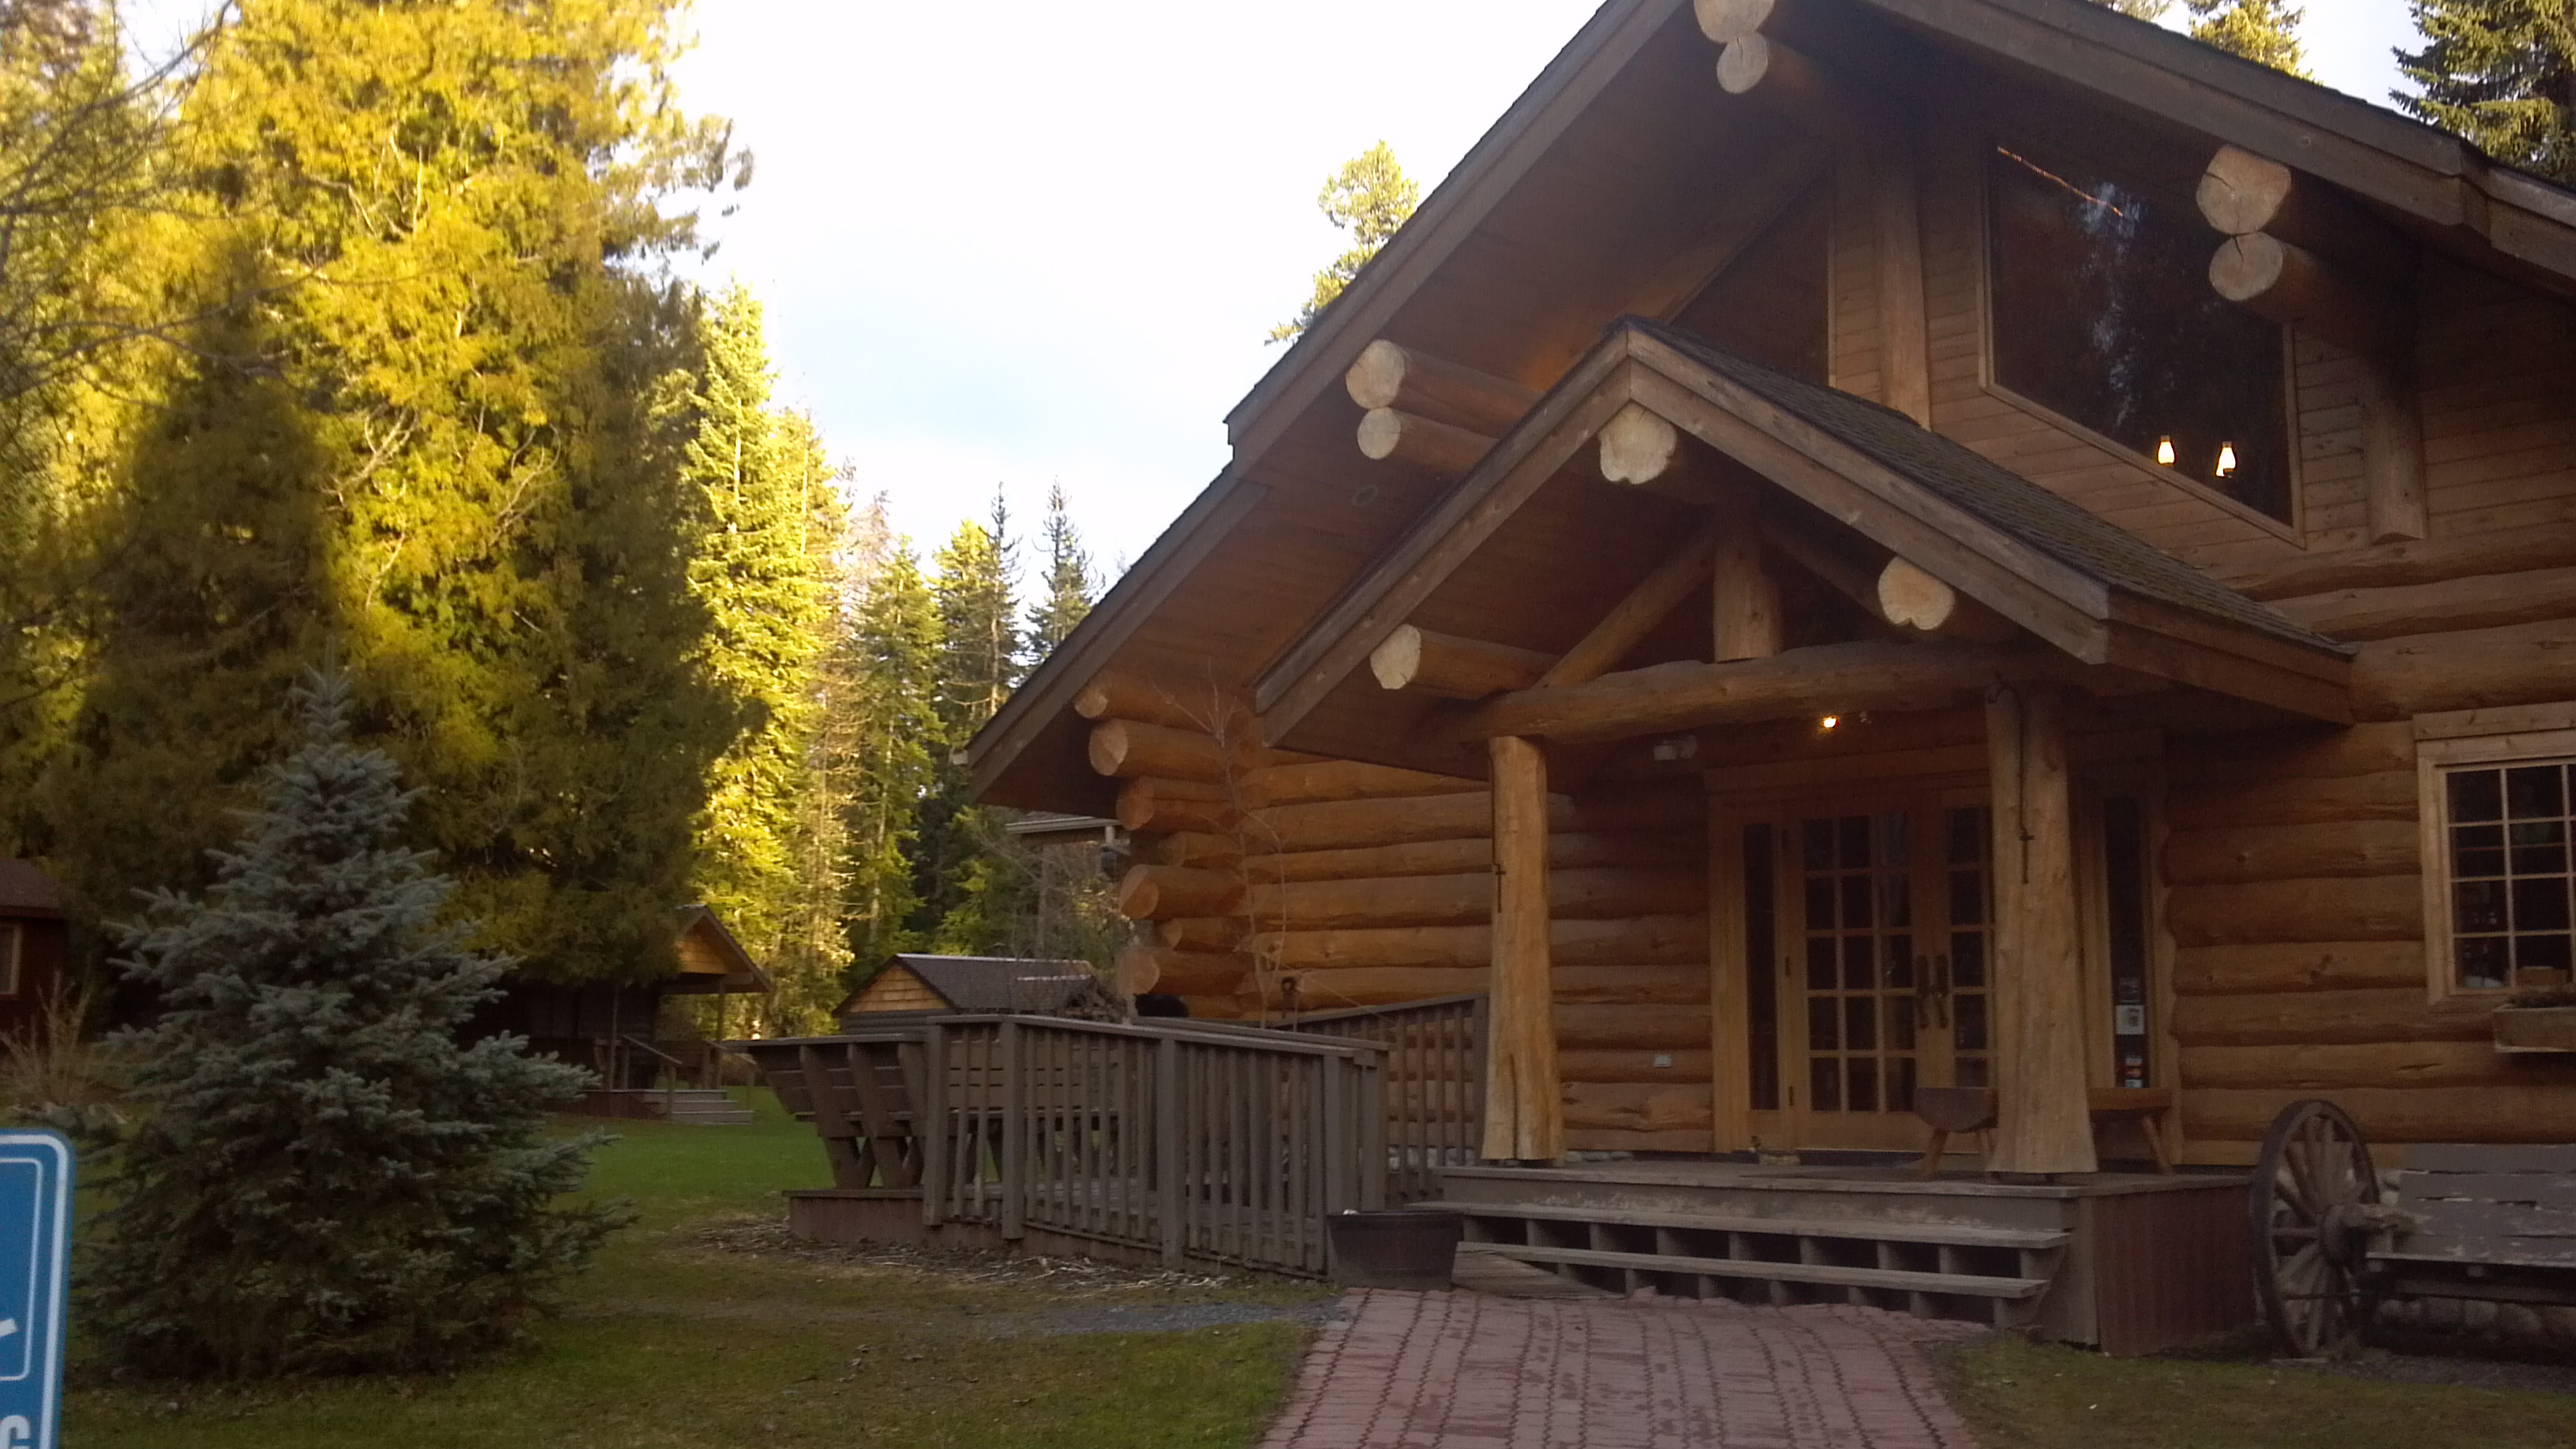 Foodie's Diary: Lochsa Lodge, Clearwater National Forest